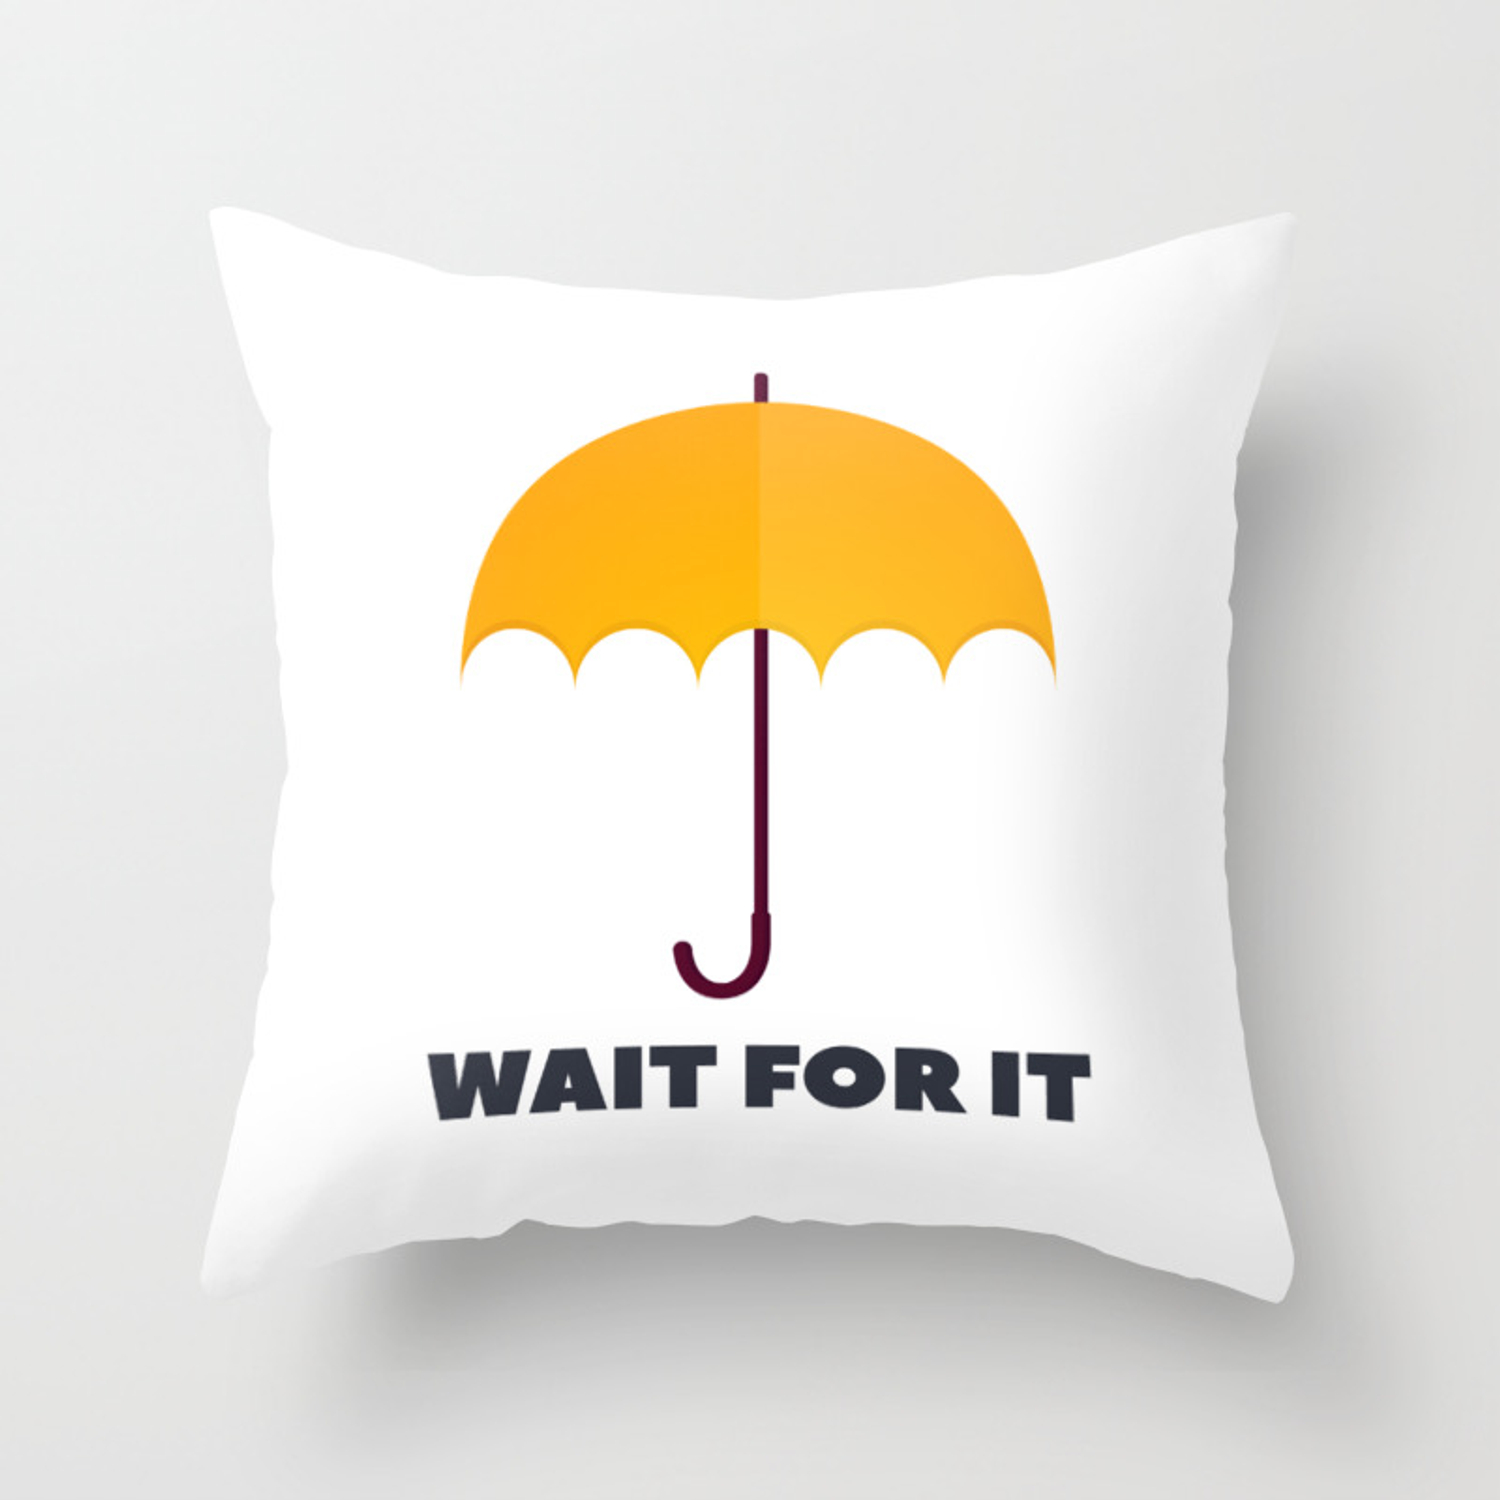 How I Met Your Mother Wait For It Yellow Umbrella Throw Pillow